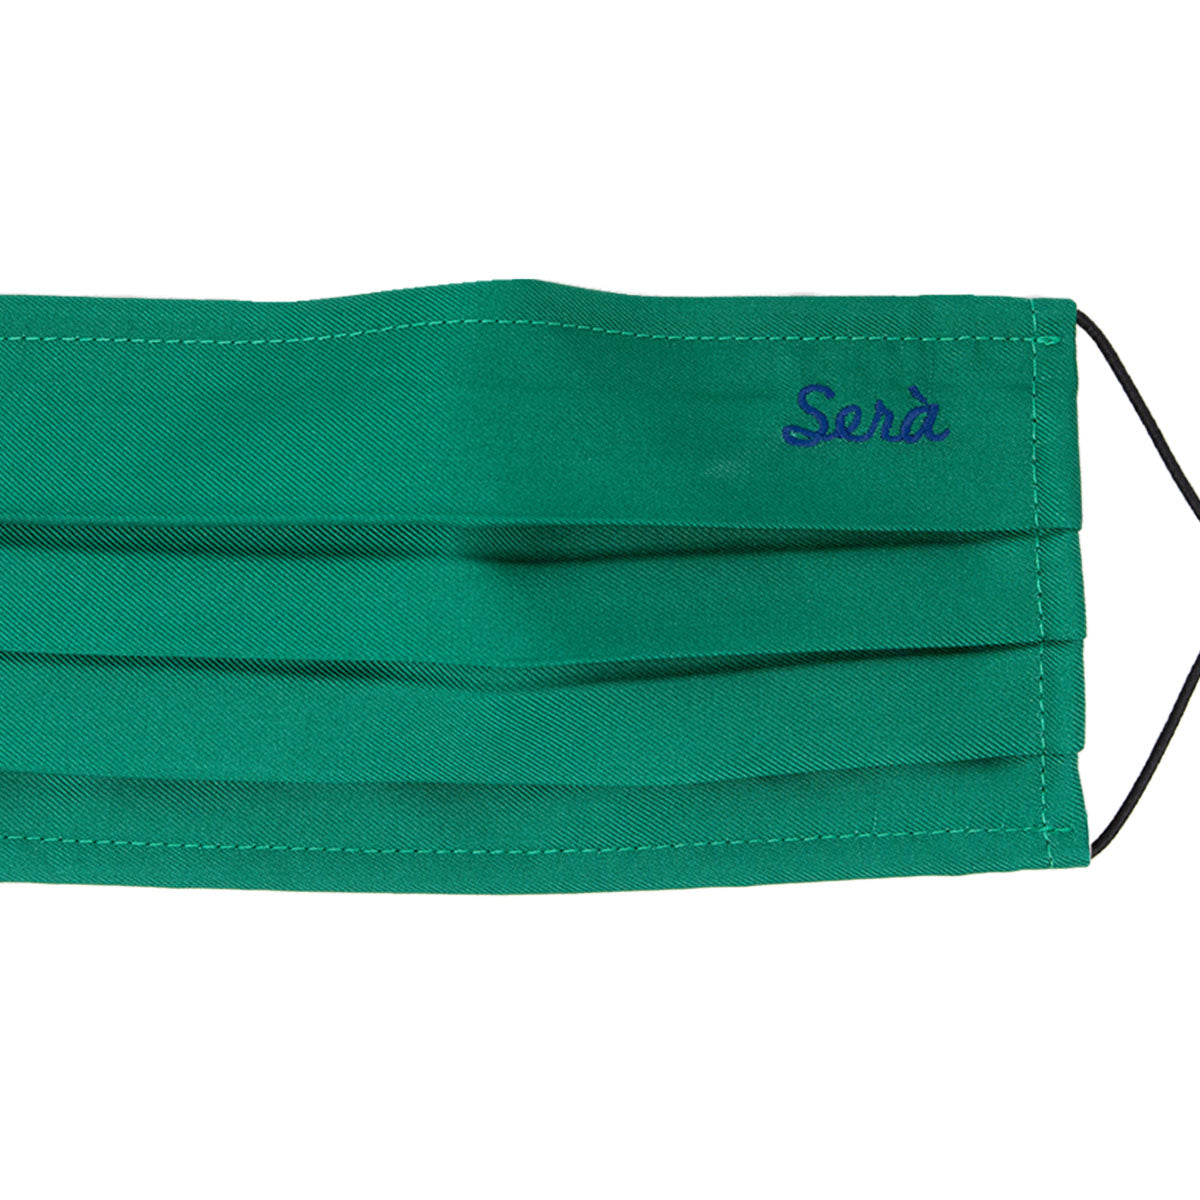 serà fine silk - face cover emerald green